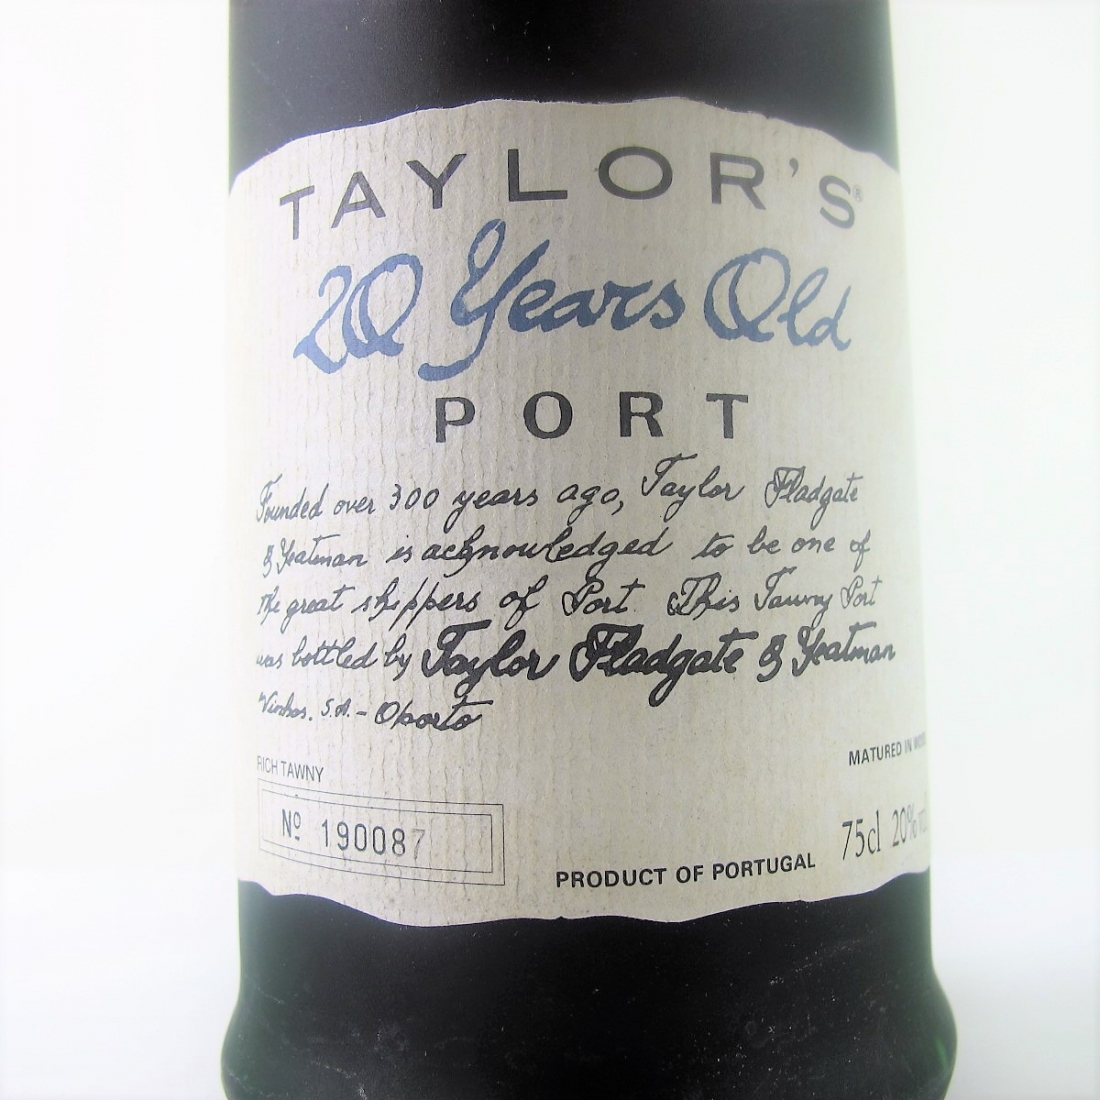 Taylor's 20 Year Old Tawny Port